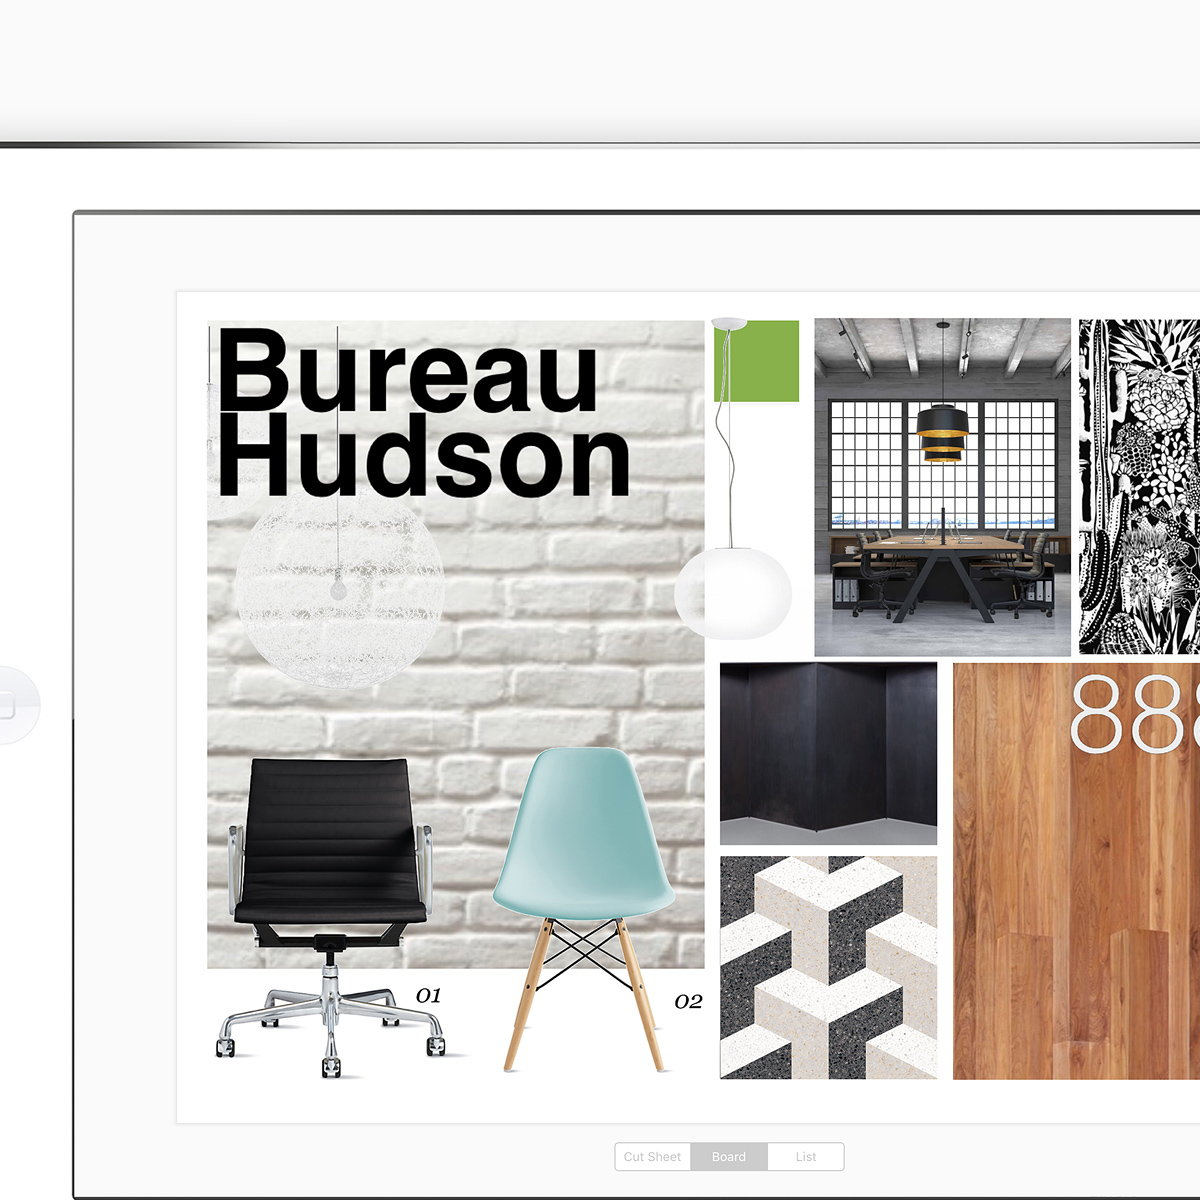 Morpholio Launches Ava - Design Your Entire Home on Your iPad